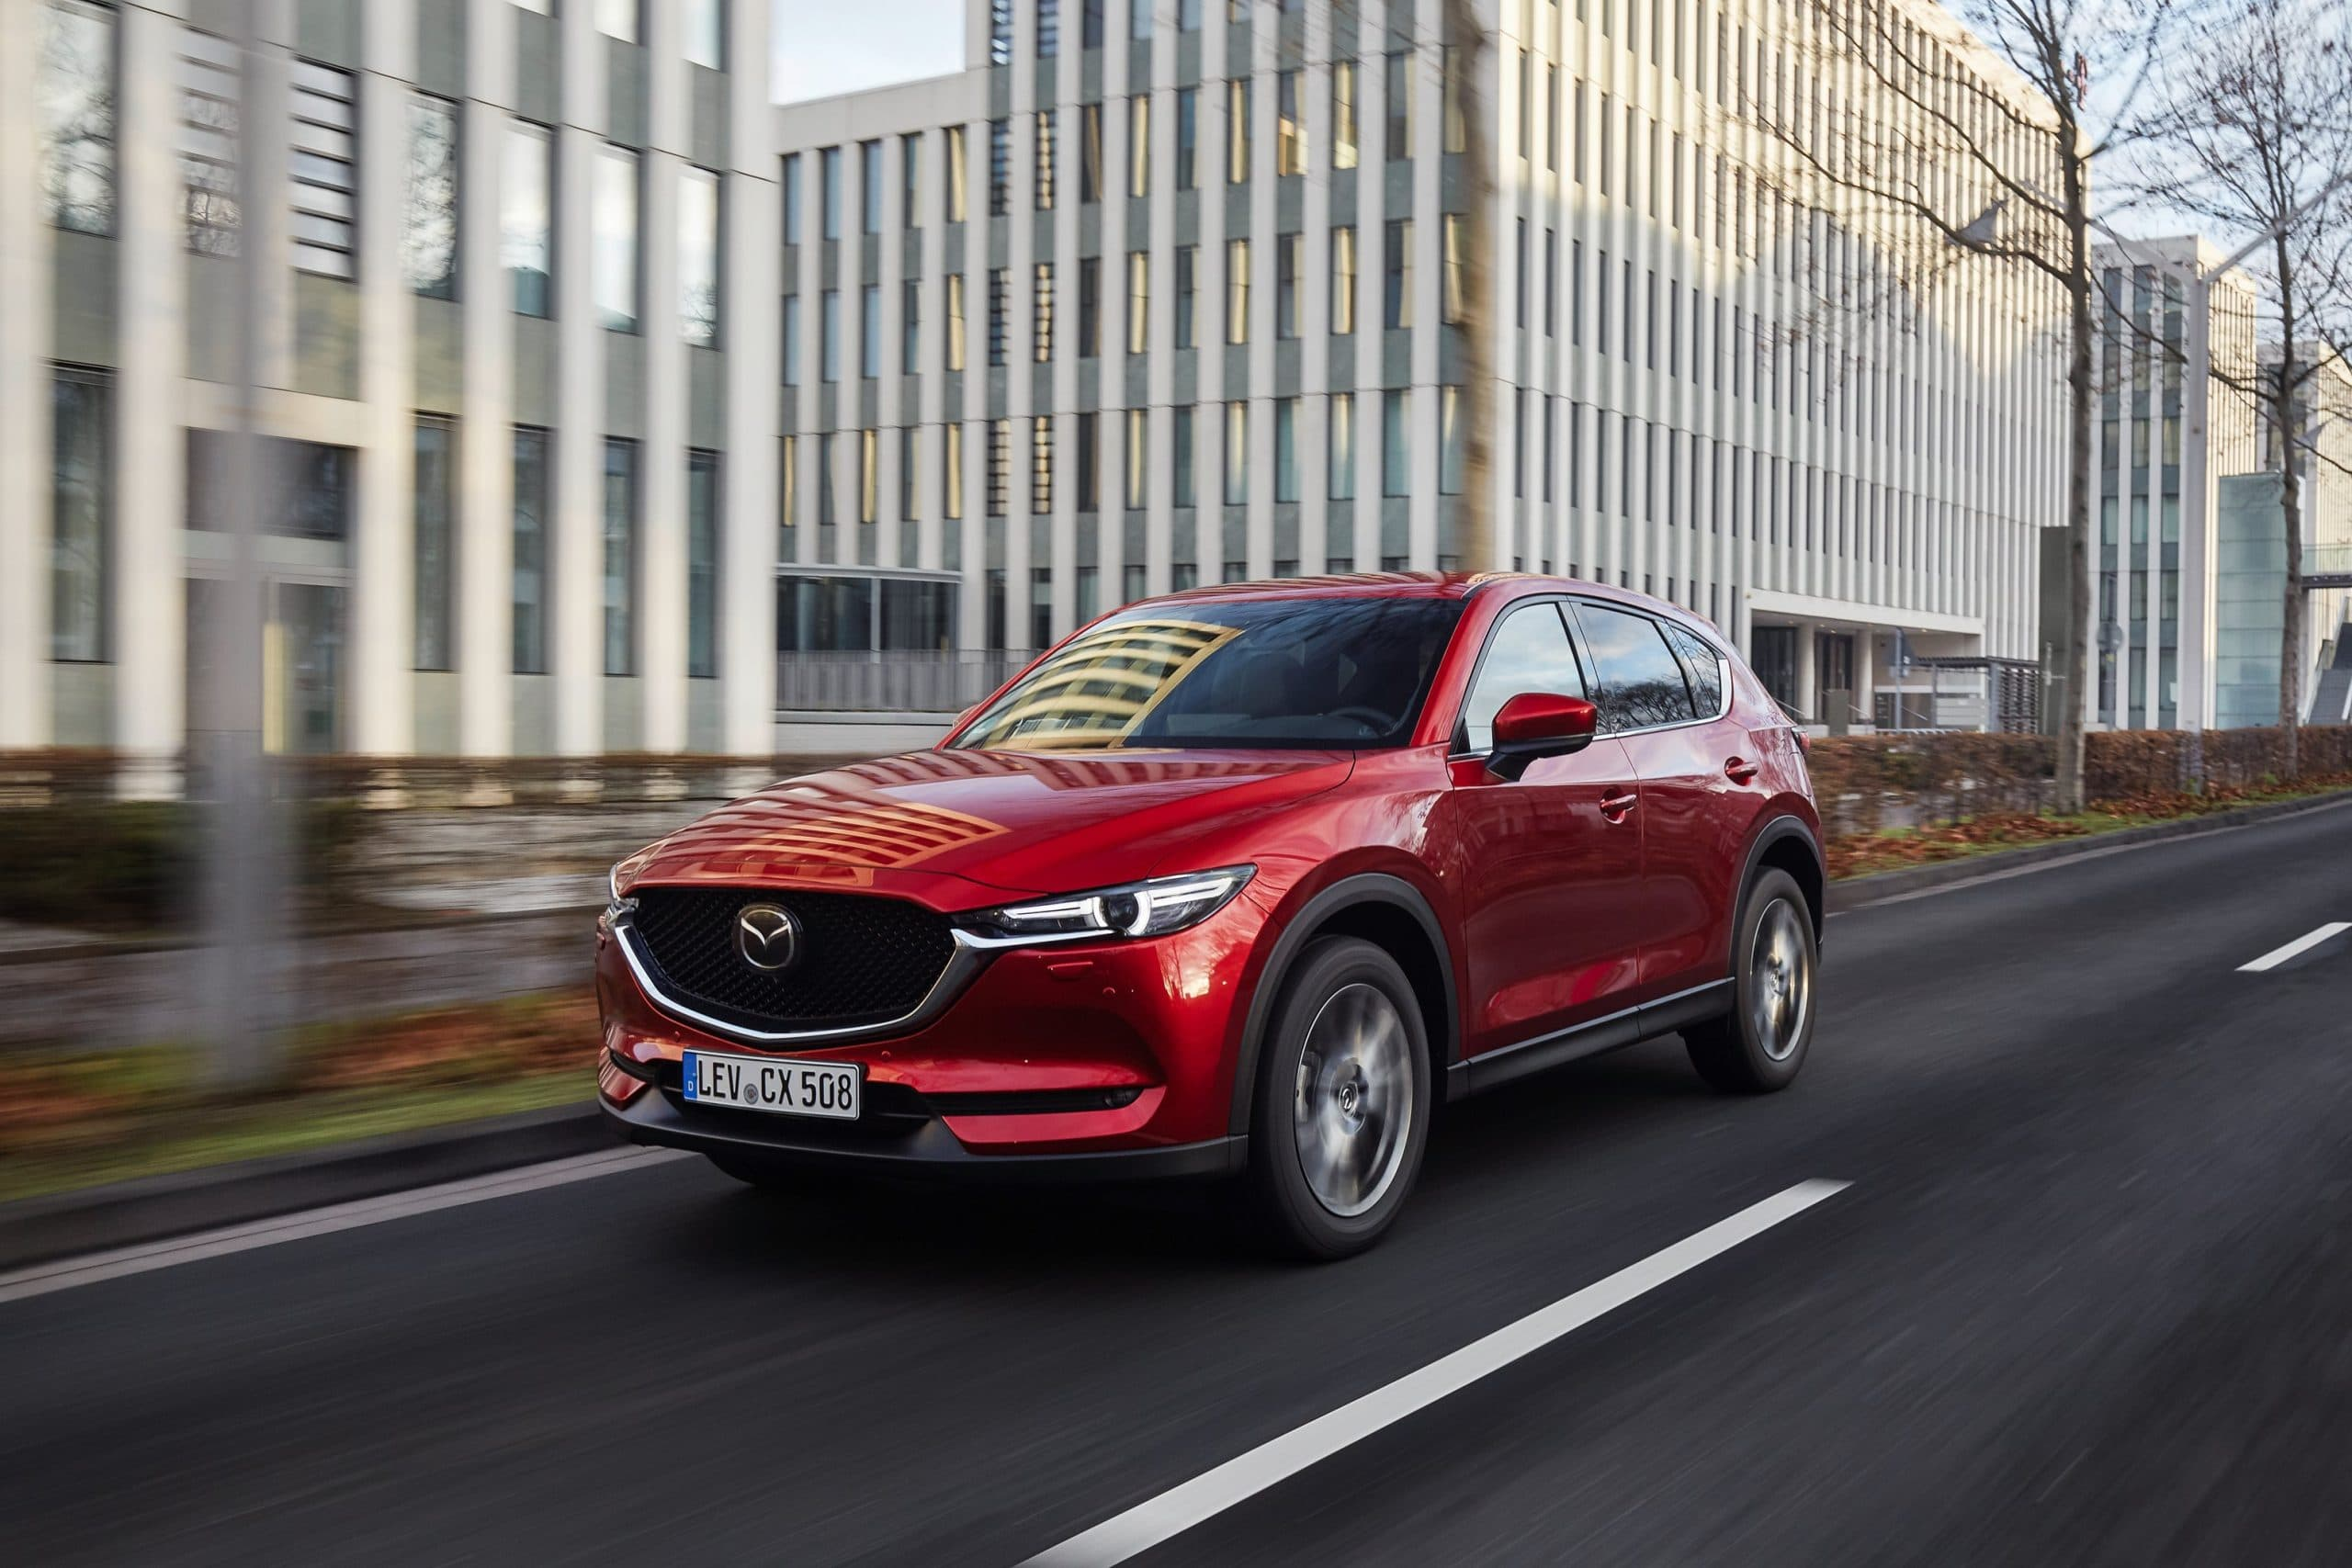 """2021 Mazda CX 5 Soul Red Crystal Action 21 scaled Οι Γερμανοί διαπίστωσαν ότι το Mazda CX-5 """"δε σπάει-δε χαλάει"""" Mazda, Mazda CX-5, βλάβες, καινούρια, μεταχειρισμένα, μεταχειρισμένο"""